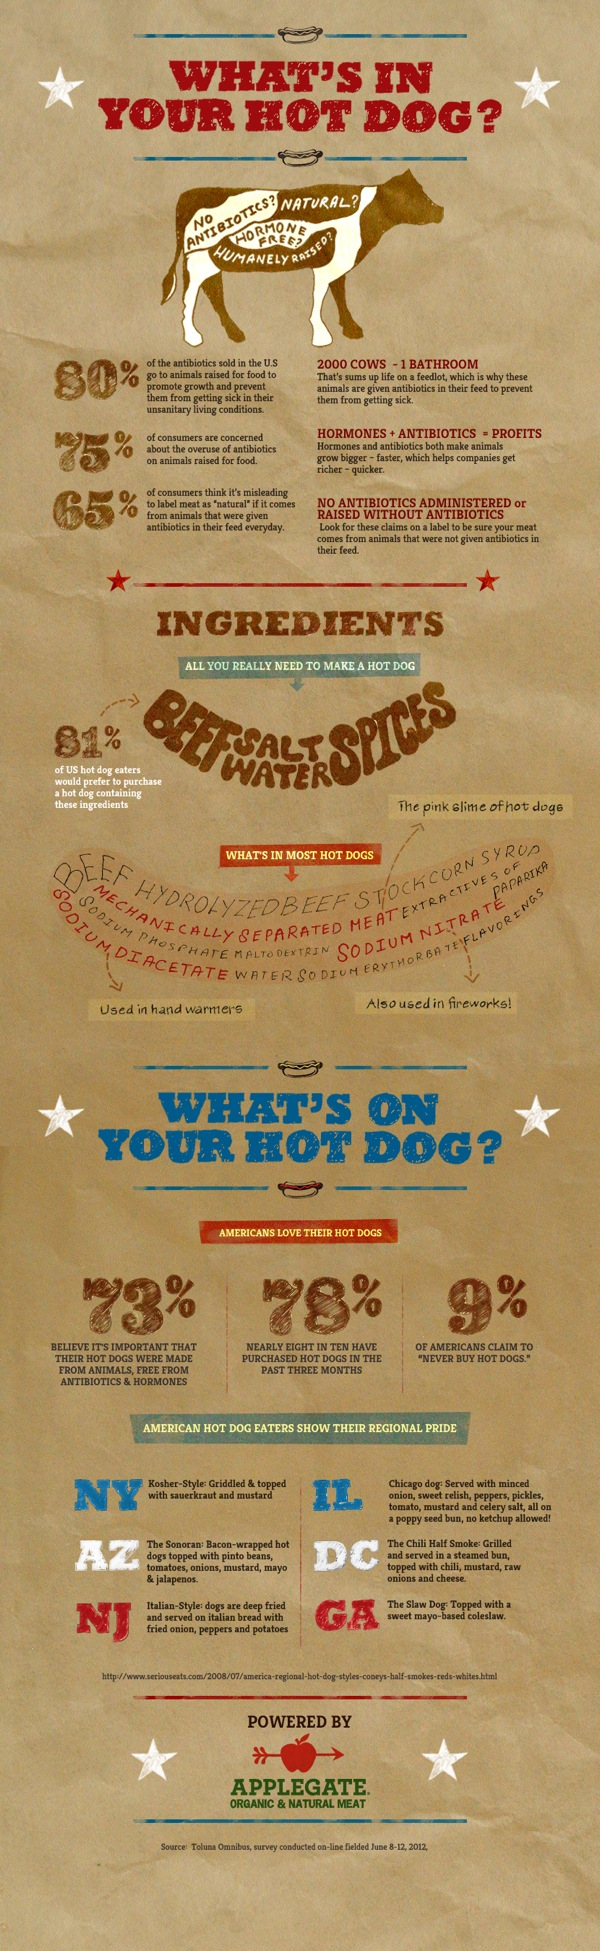 What is Inside Your Hotdogs